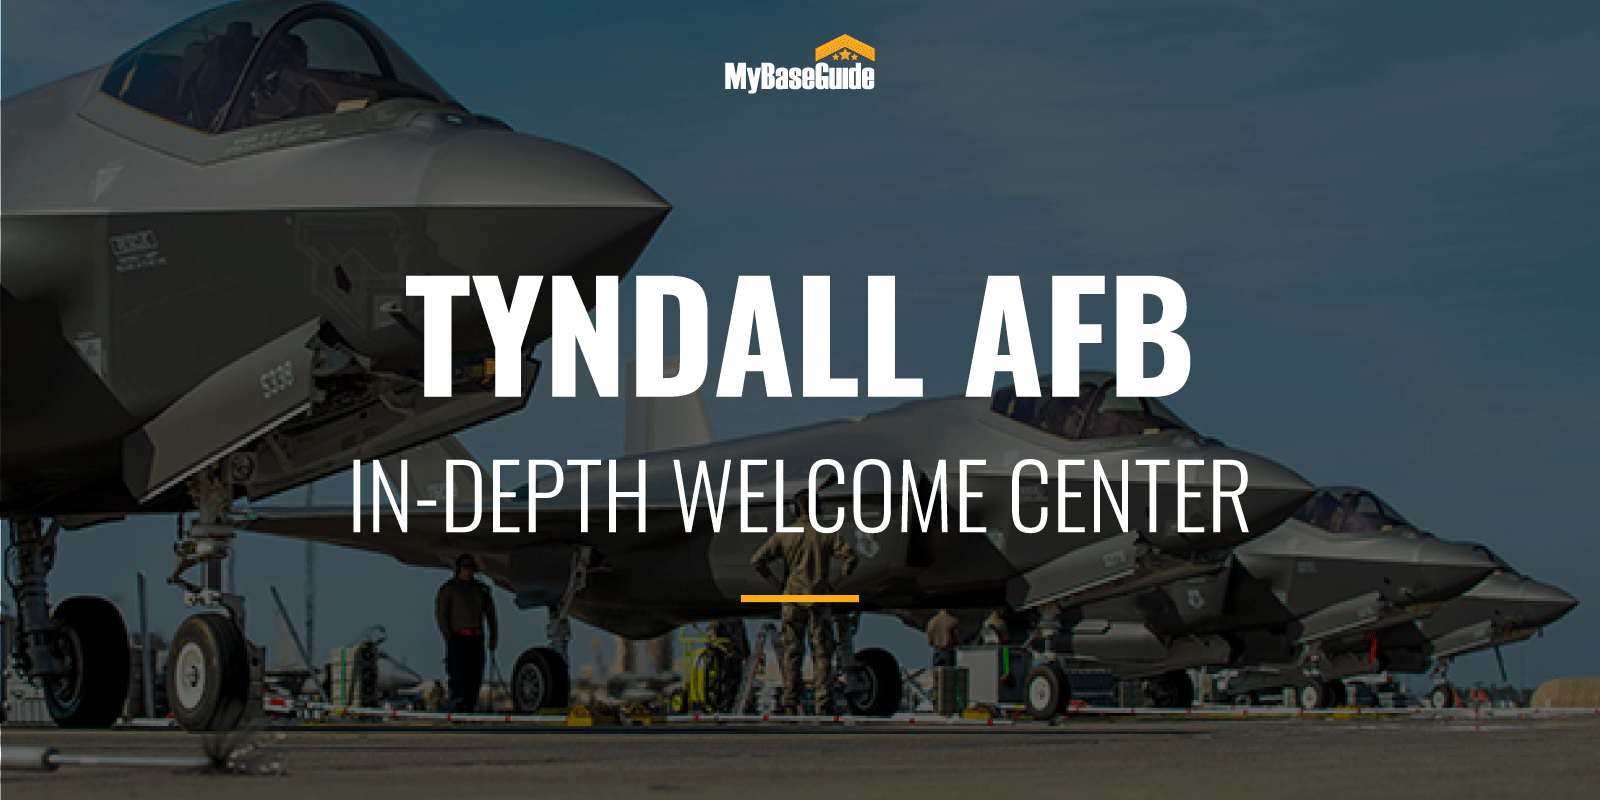 Tyndall Air Force Base: In-Depth Welcome Center